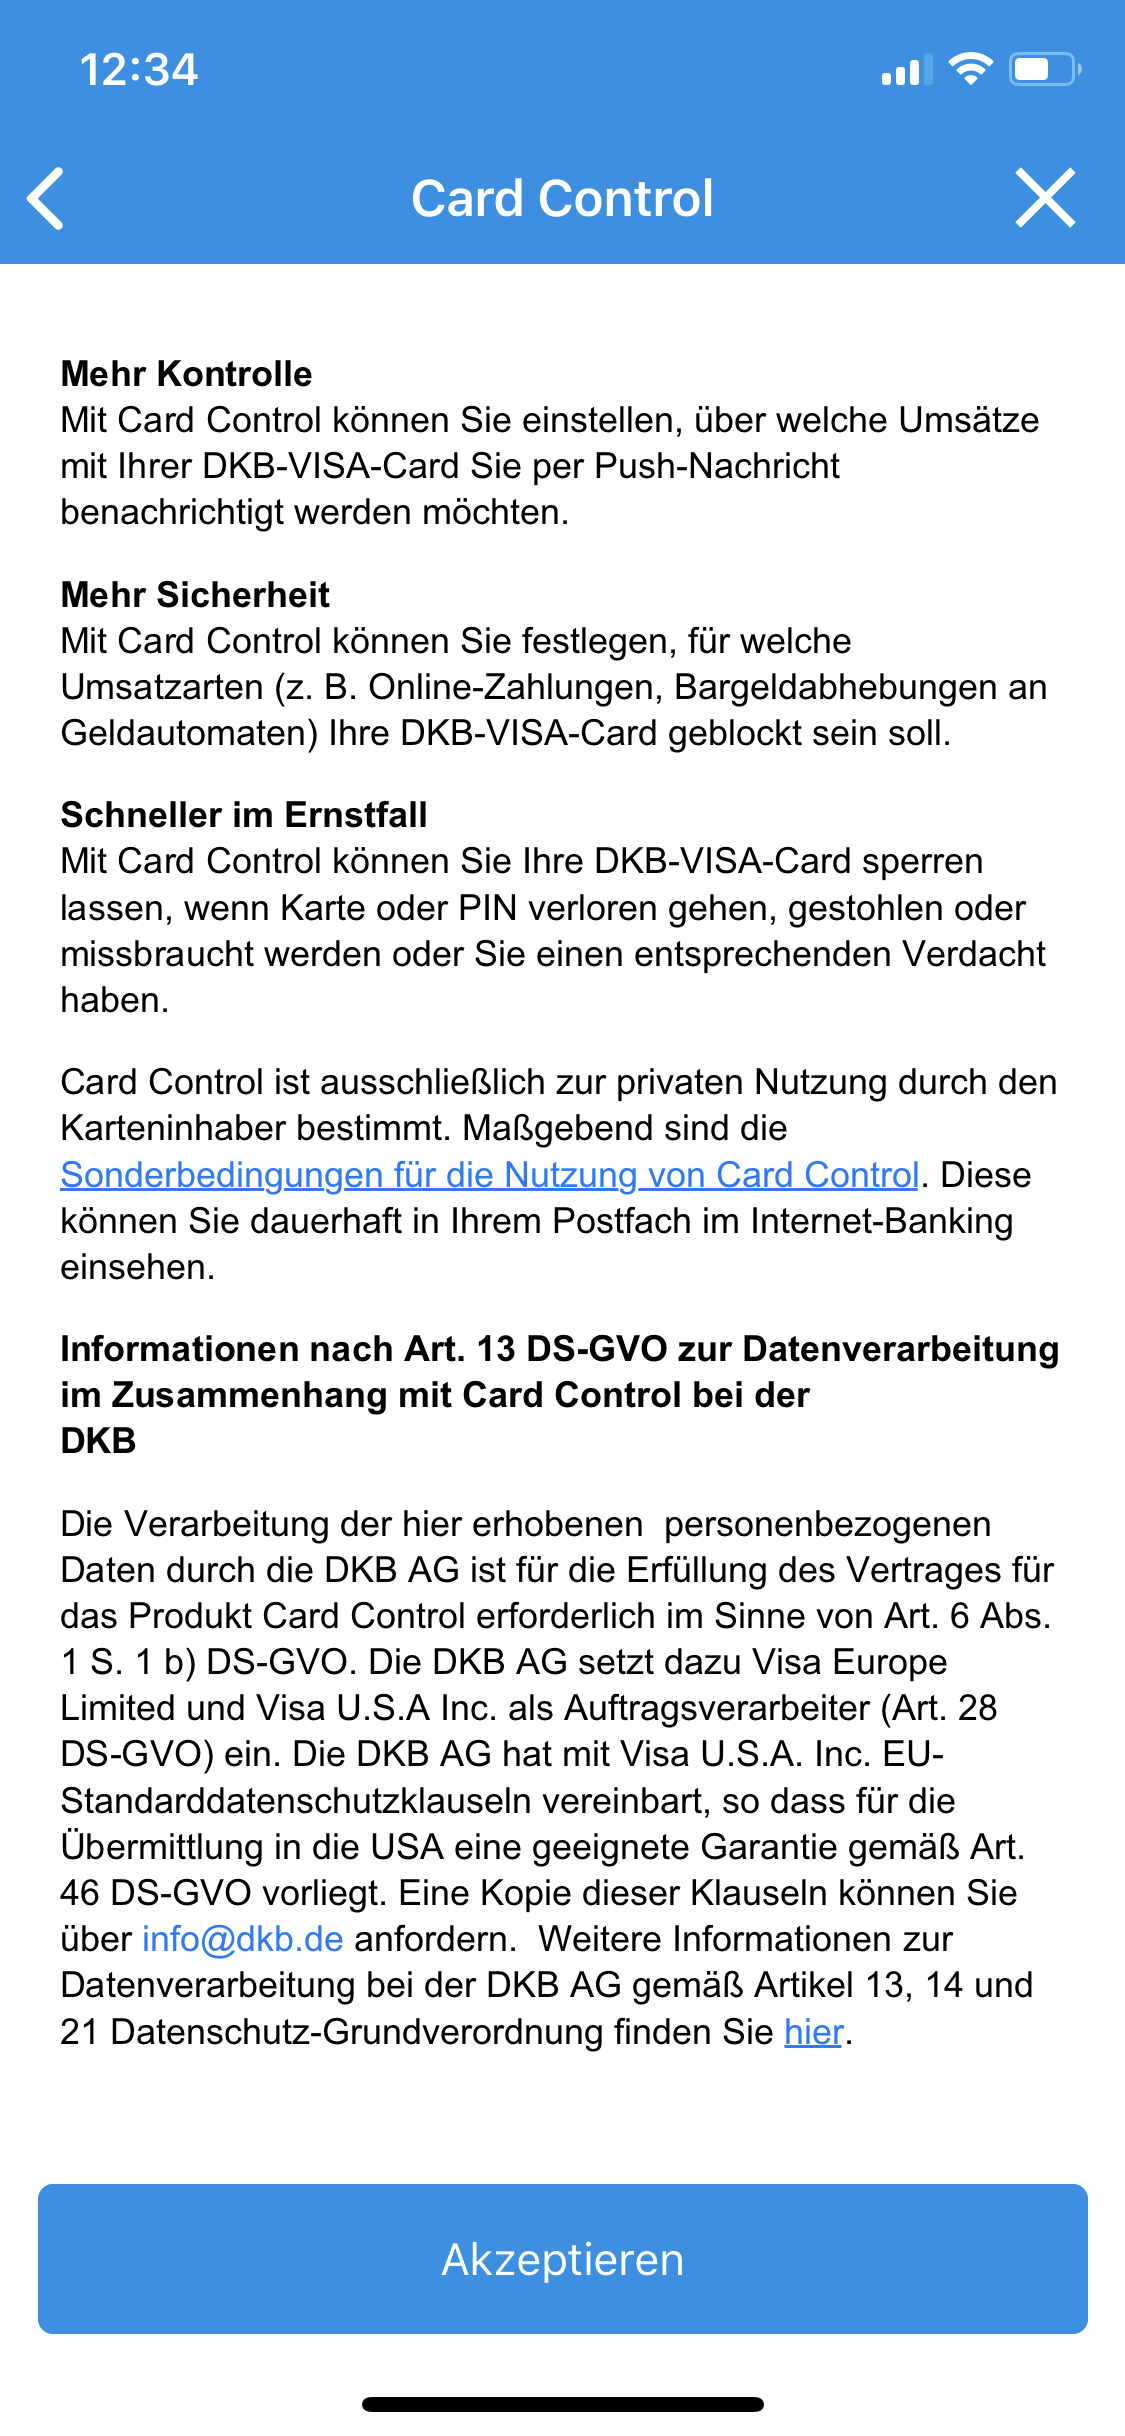 Apple iPhone - DKB-Banking-App - Card Control - Nutzungsbedingungen